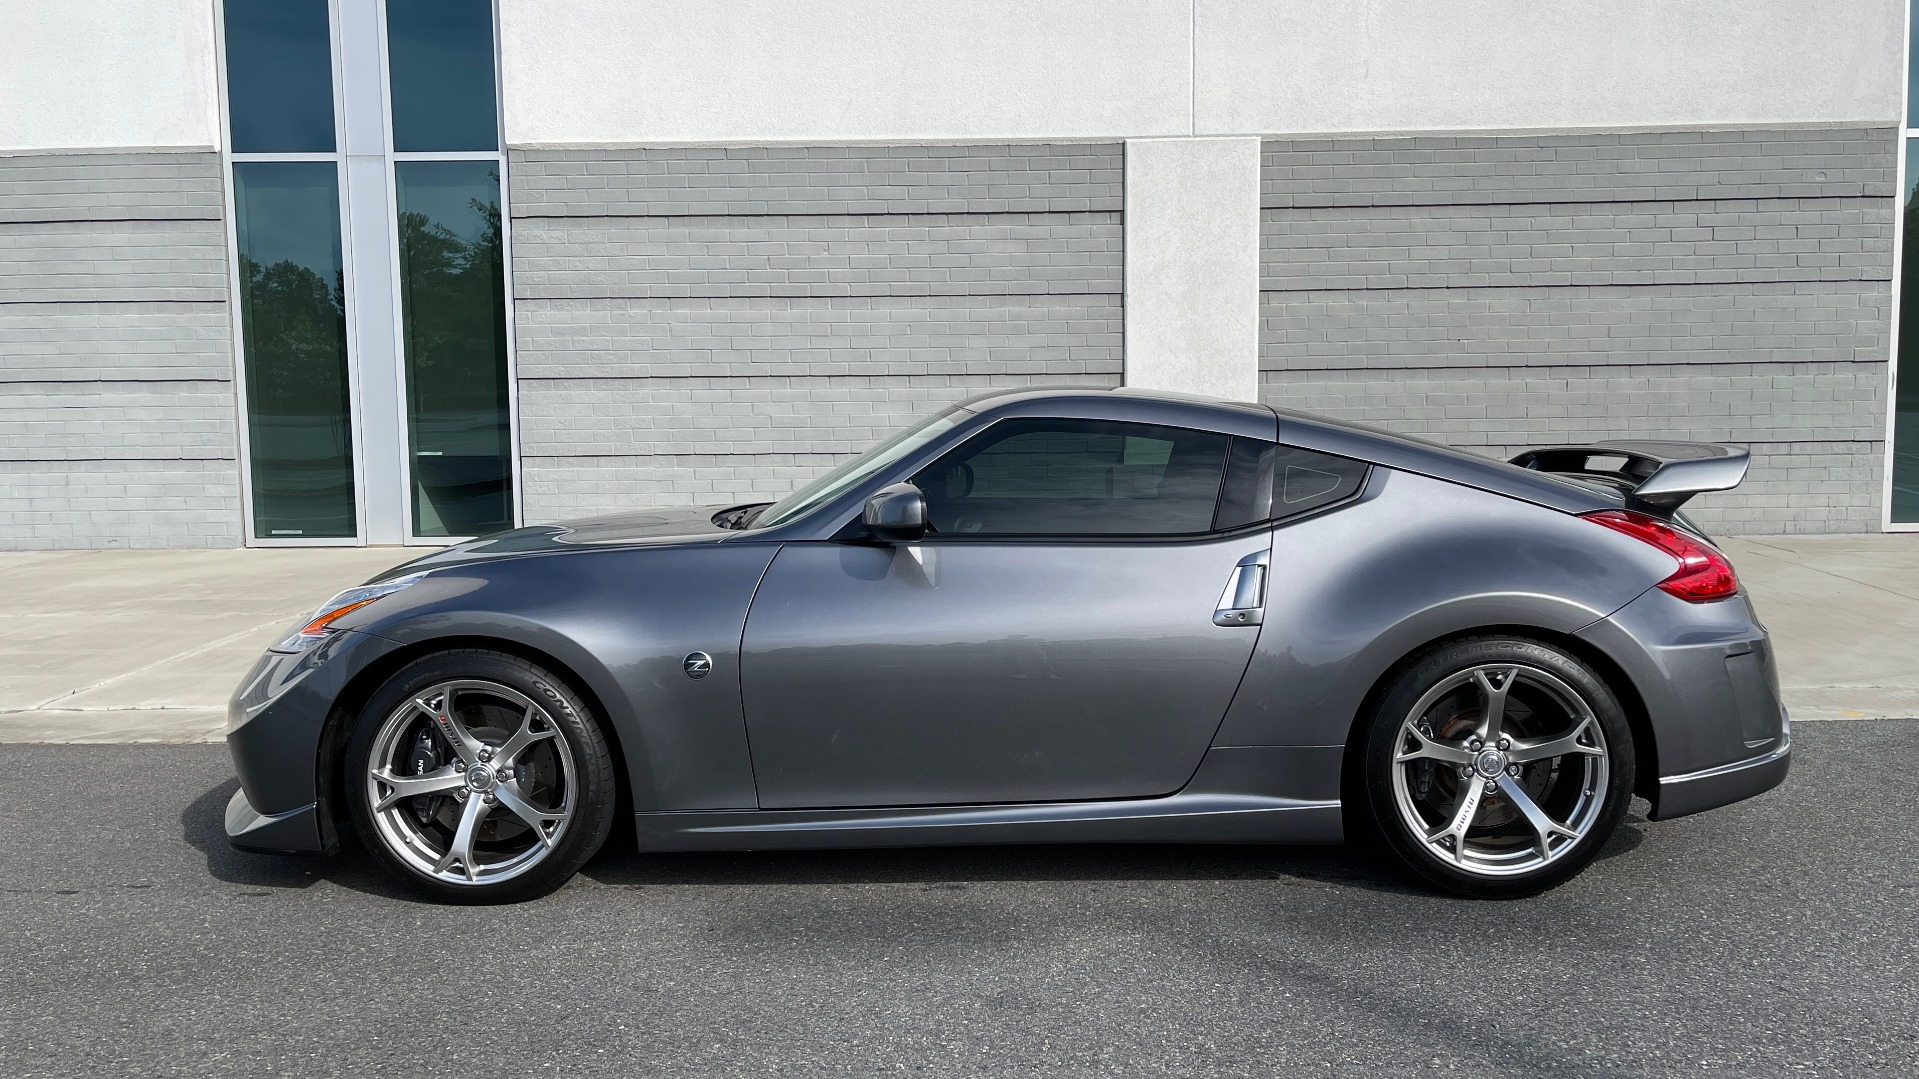 Used 2011 Nissan 370Z NISMO COUPE / 3.7L V6 / 6-SPD MAN / AUTO CLIMATE CONTROL for sale $32,995 at Formula Imports in Charlotte NC 28227 4